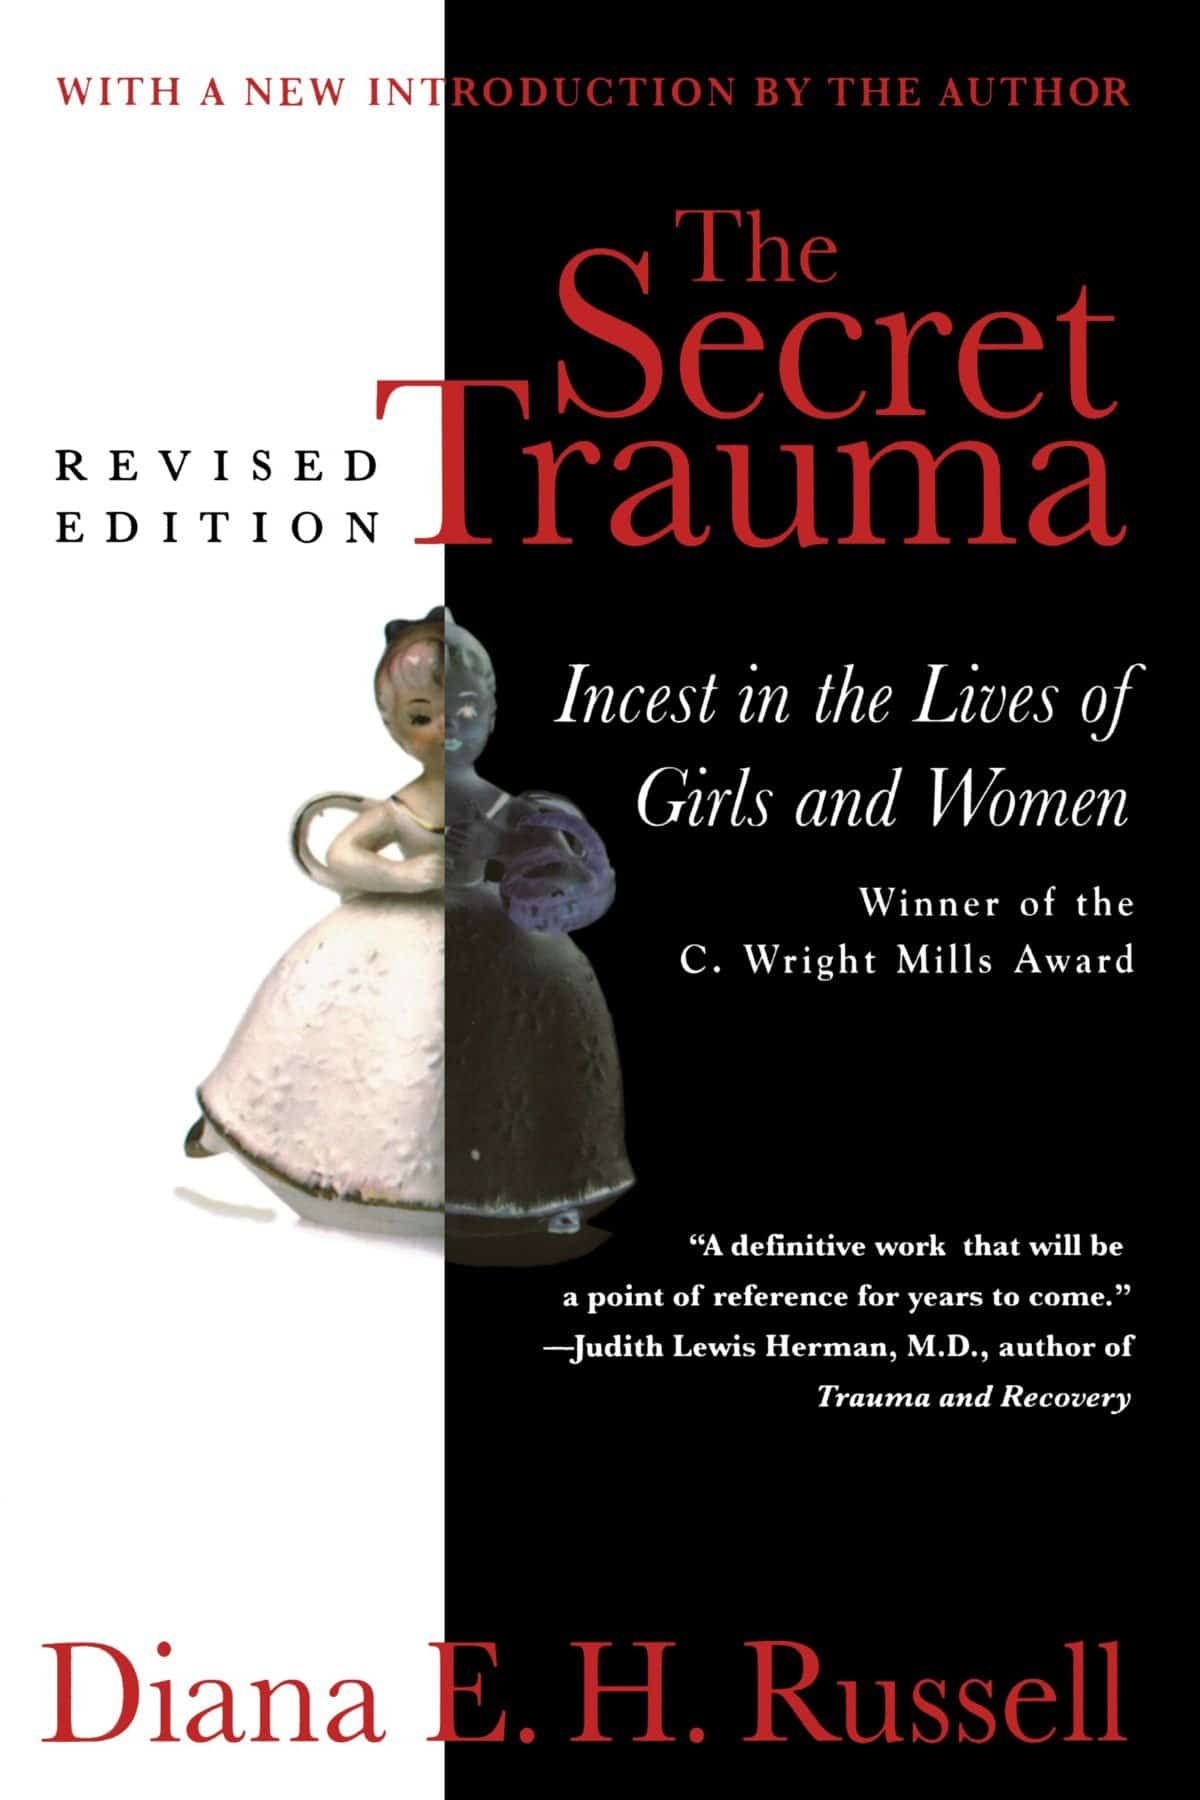 The Secret Trauma. Incest In The Lives Of Girls And Women